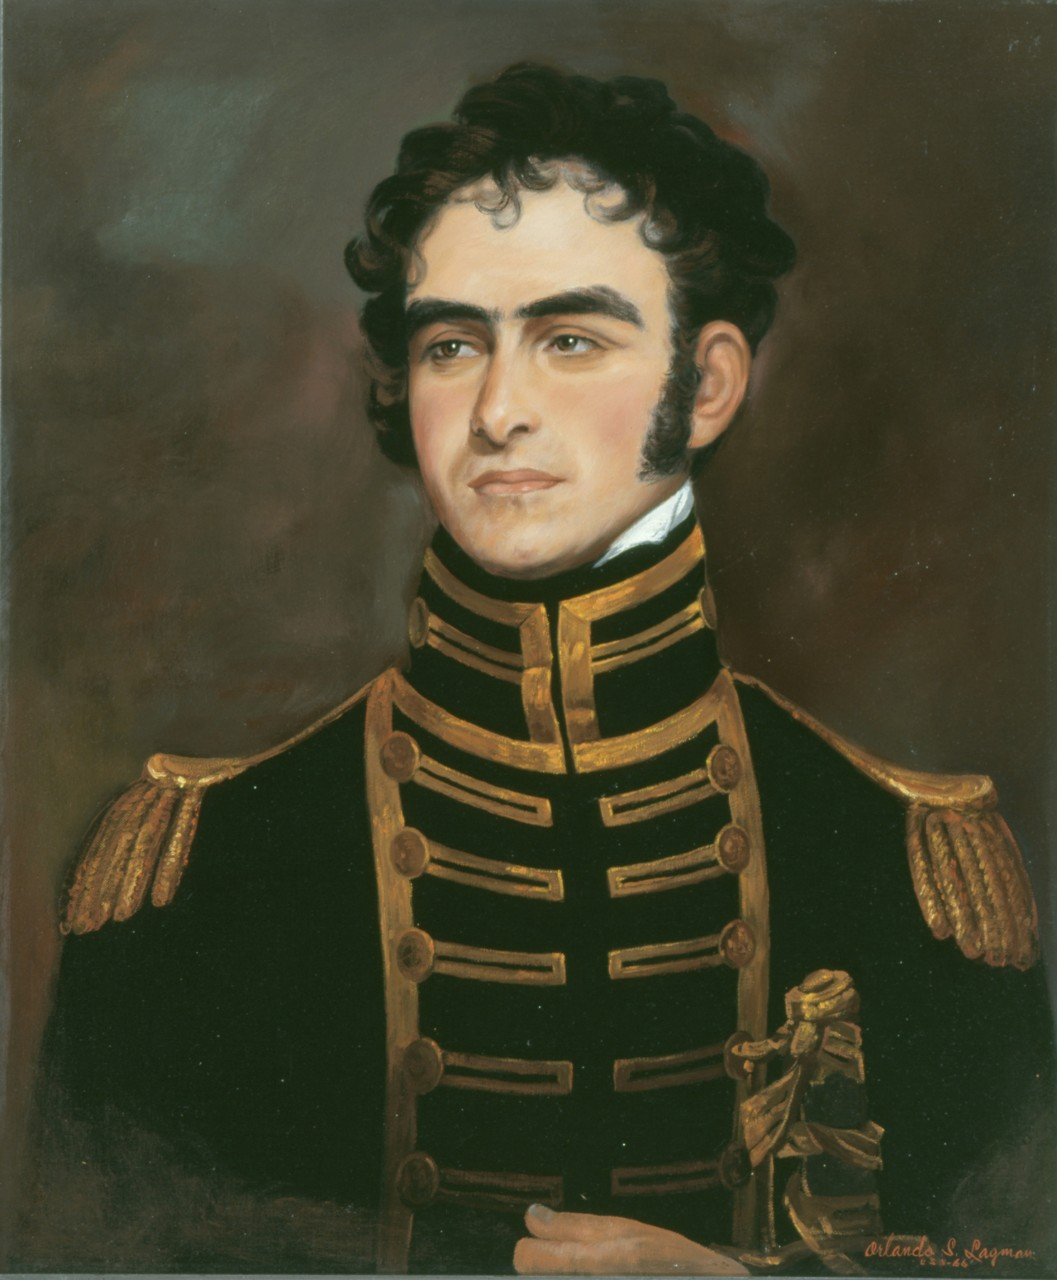 A portrait of Commodore John Rodgers, he is holding his sword in his left hand there is smoke in the background